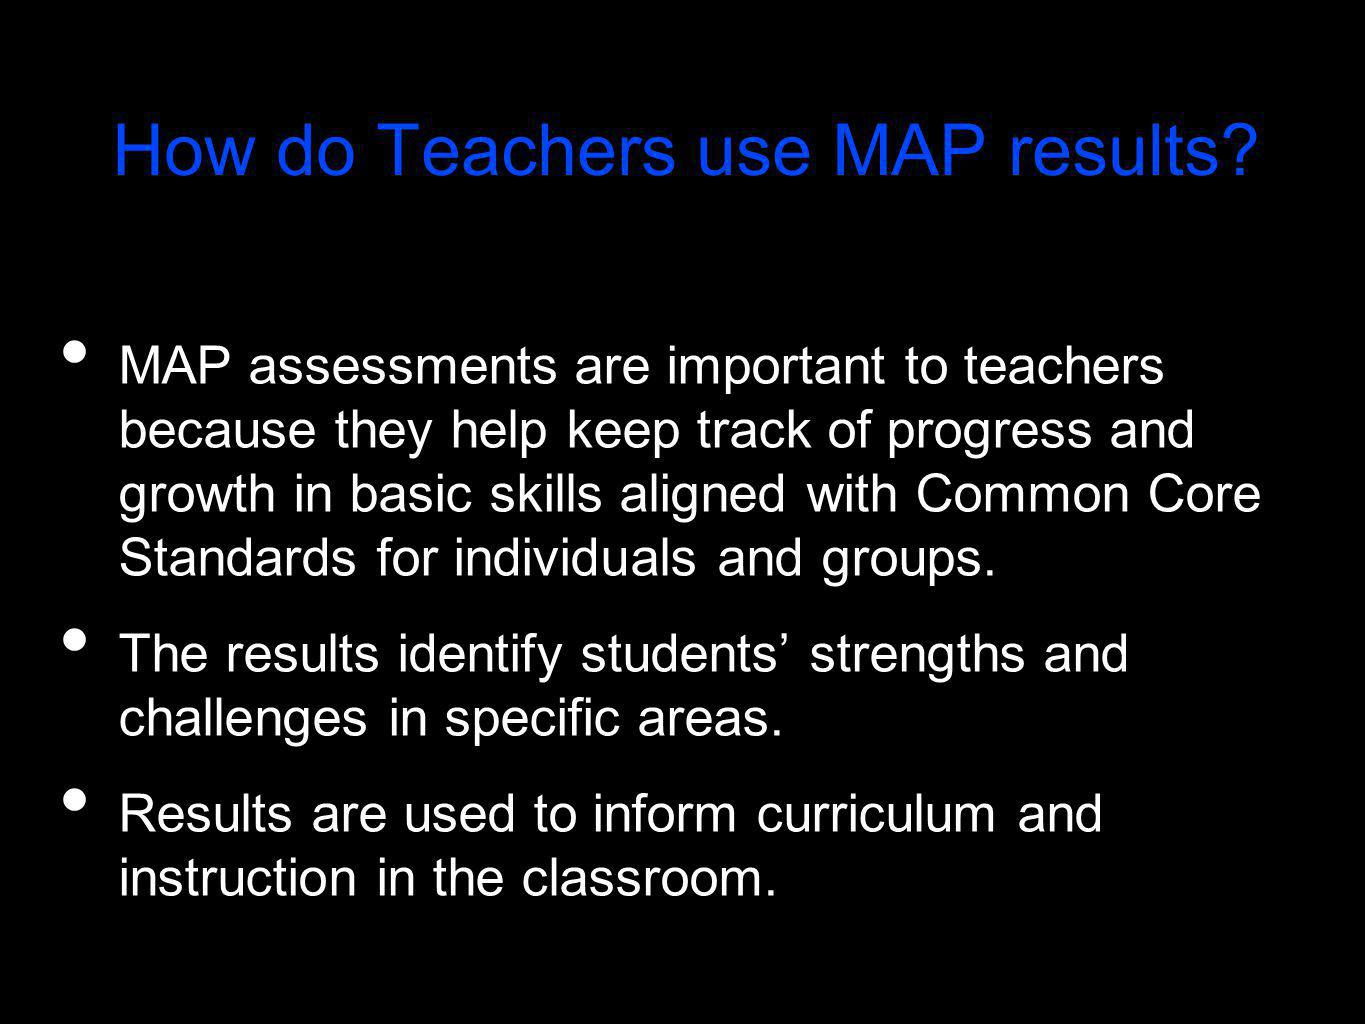 How do Teachers use MAP results? MAP assessments are important to teachers because they help keep track of progress and growth in basic skills aligned